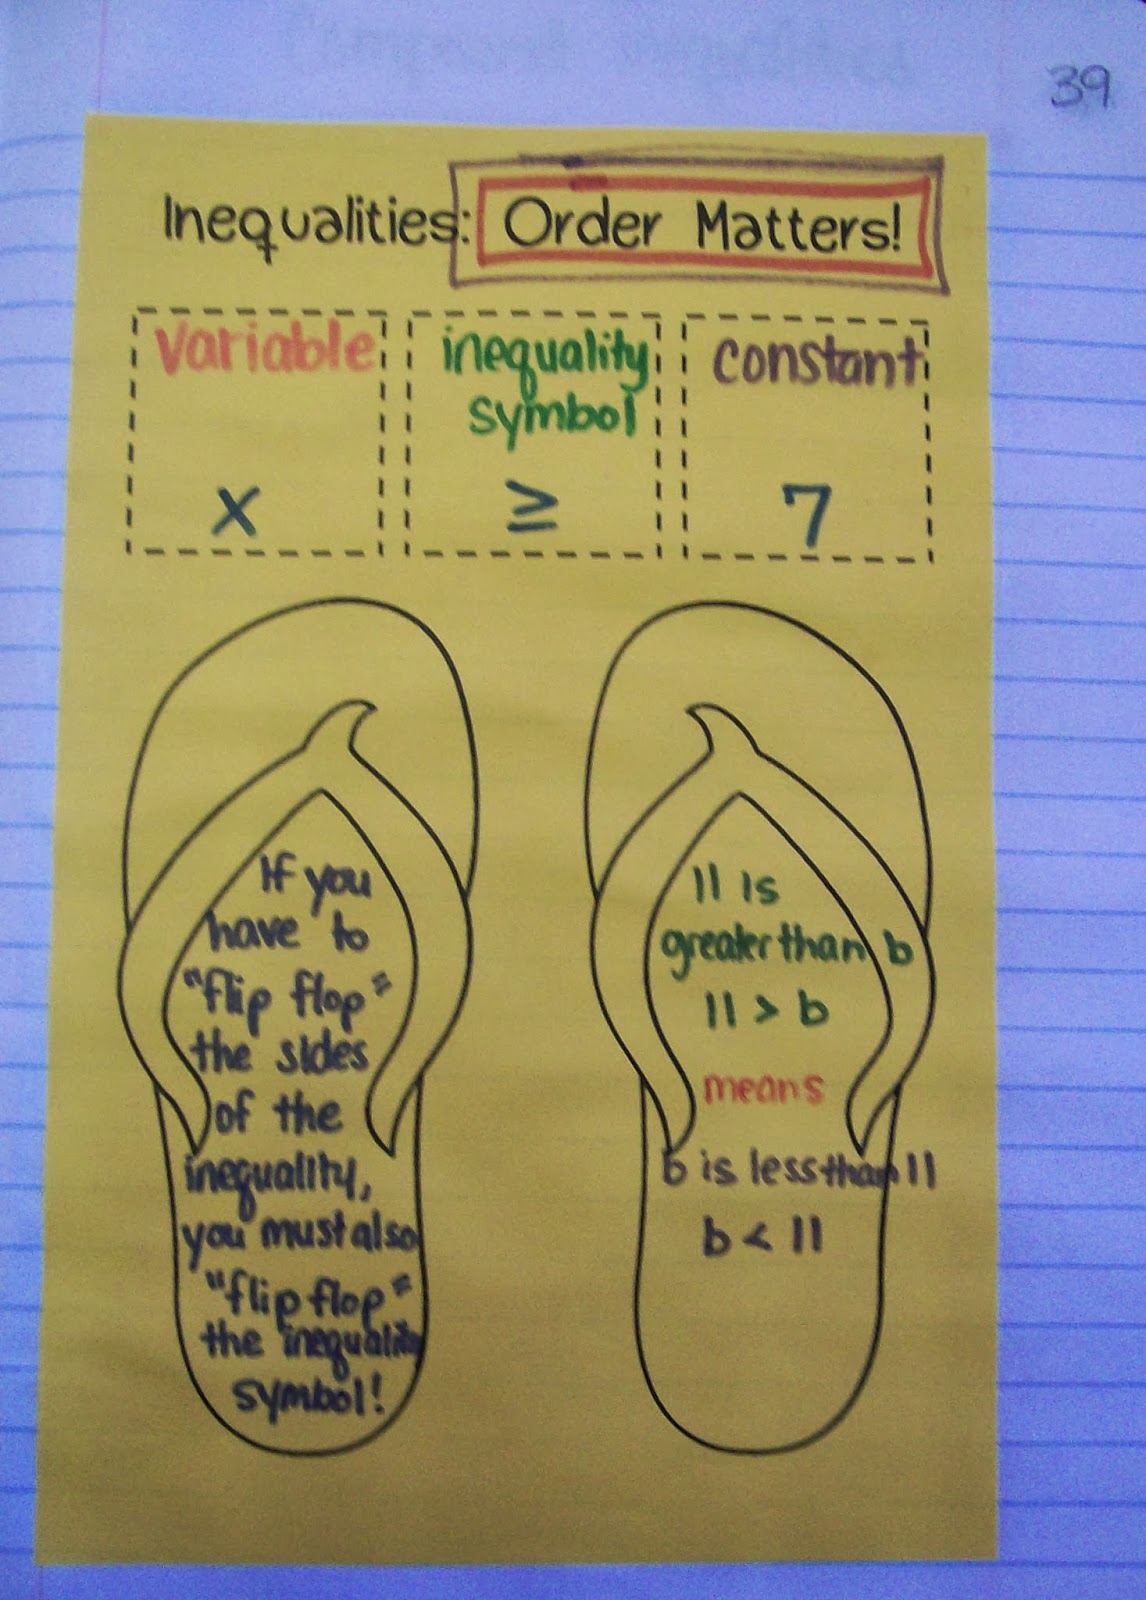 Inequalities Inb Page: Order Matters  The Flip Flop Rule